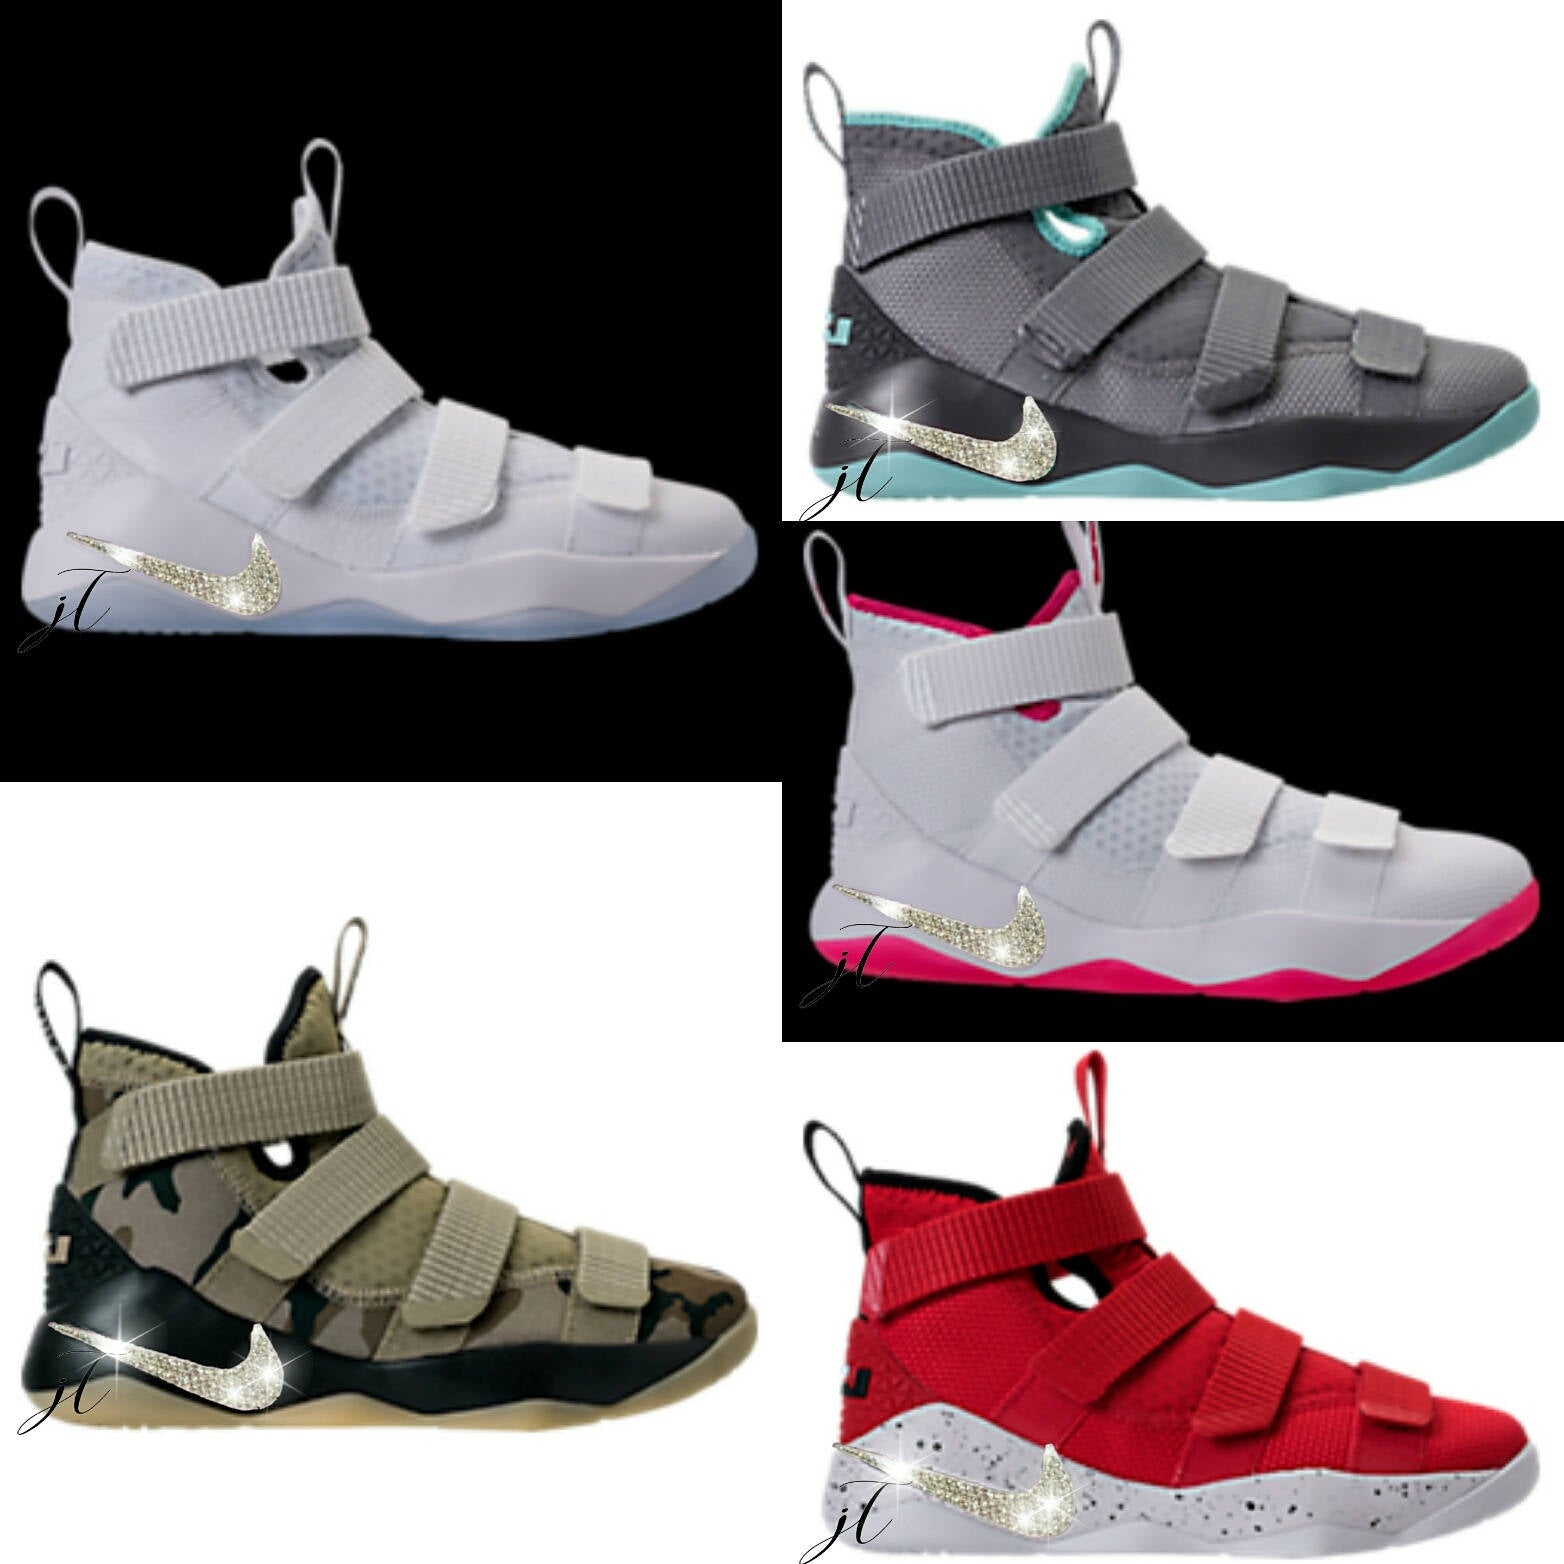 low priced 73fec 20dd3 50e92 b5585  best price nike lebron solider 11 customized with swarovski  crystals 33a05 72c1e